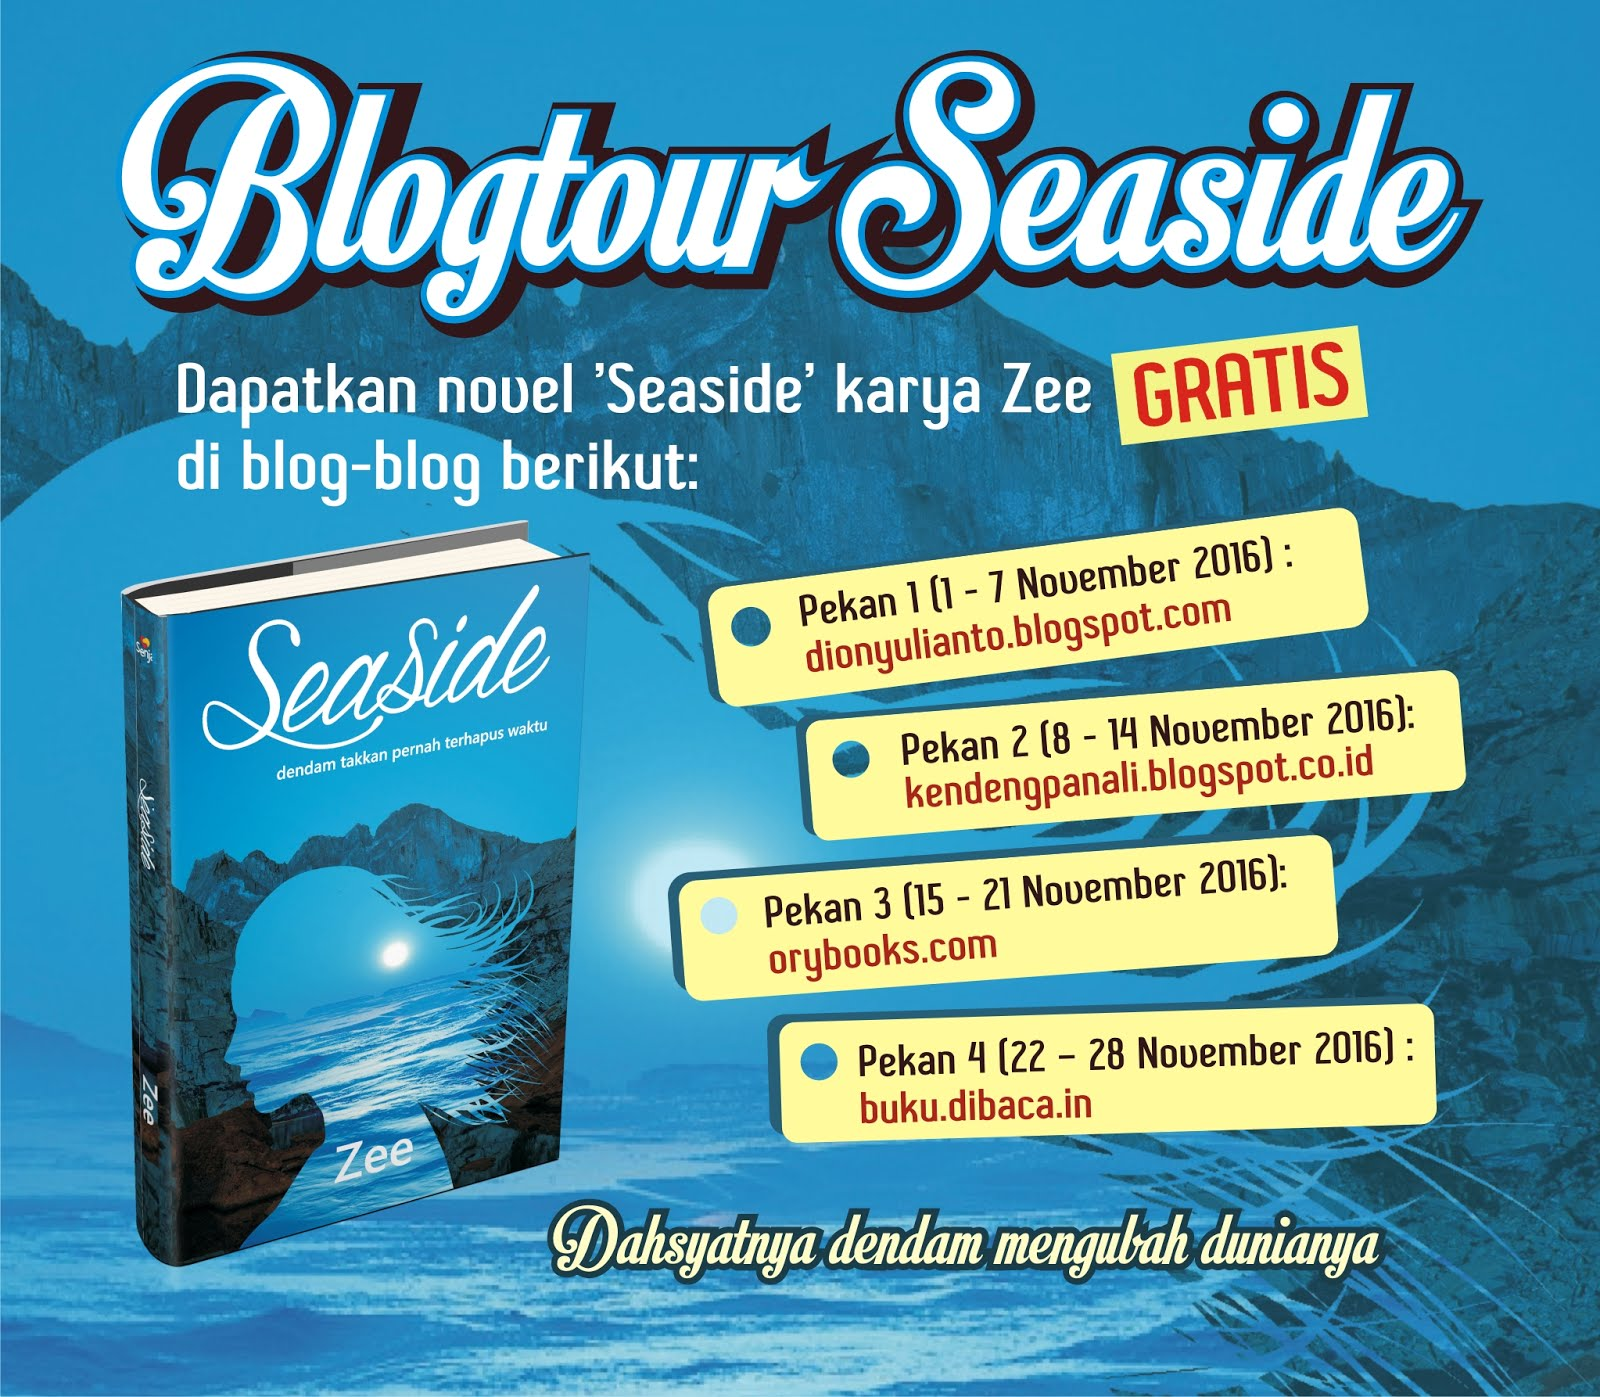 Blogtour Seaside (DL 14 Nov '16)